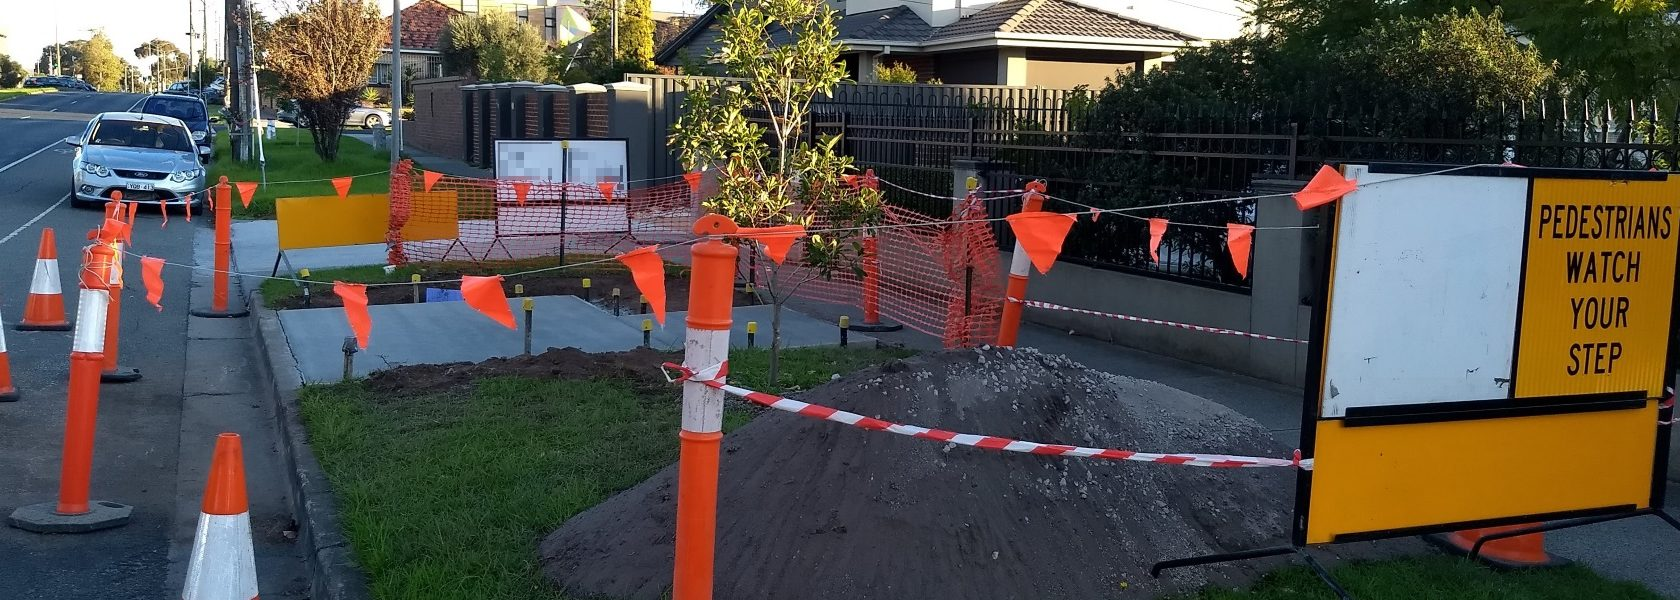 East Boundary Road bus stop under construction